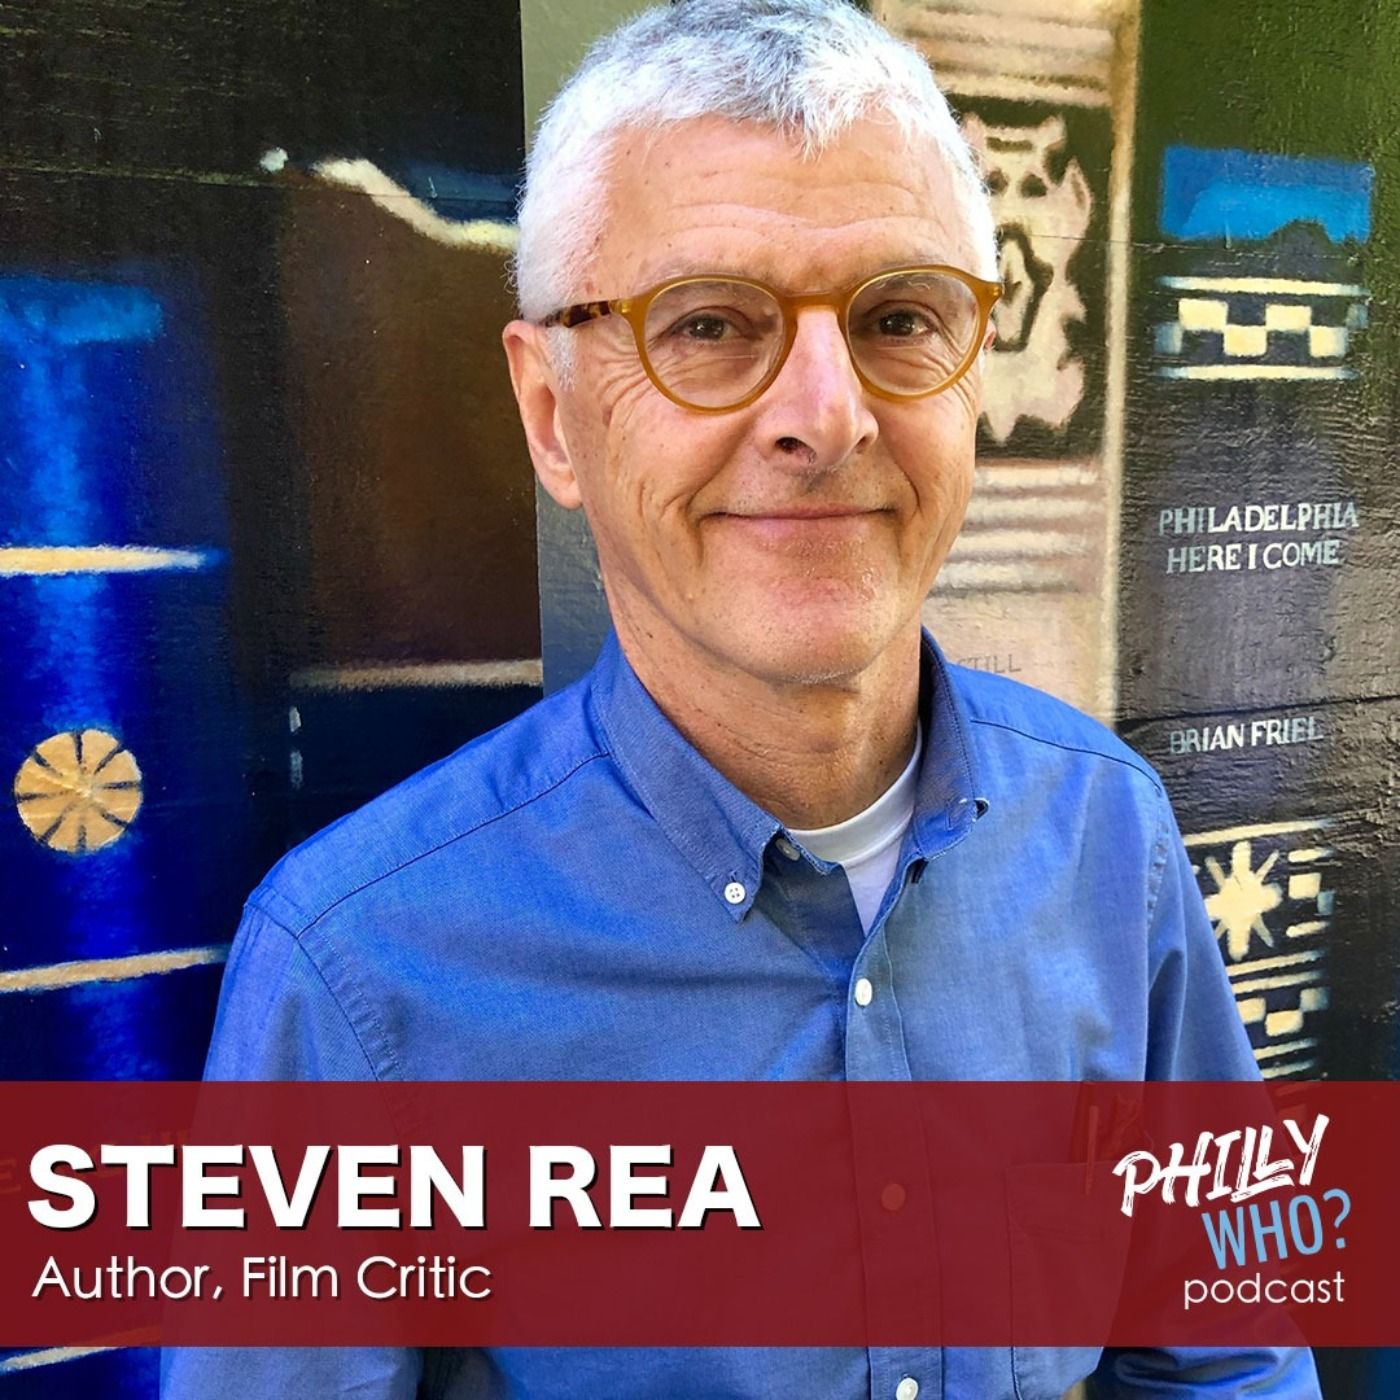 Steven Rea: Nationally Renowned Film Critic Capturing the Everyday Lives of Stars